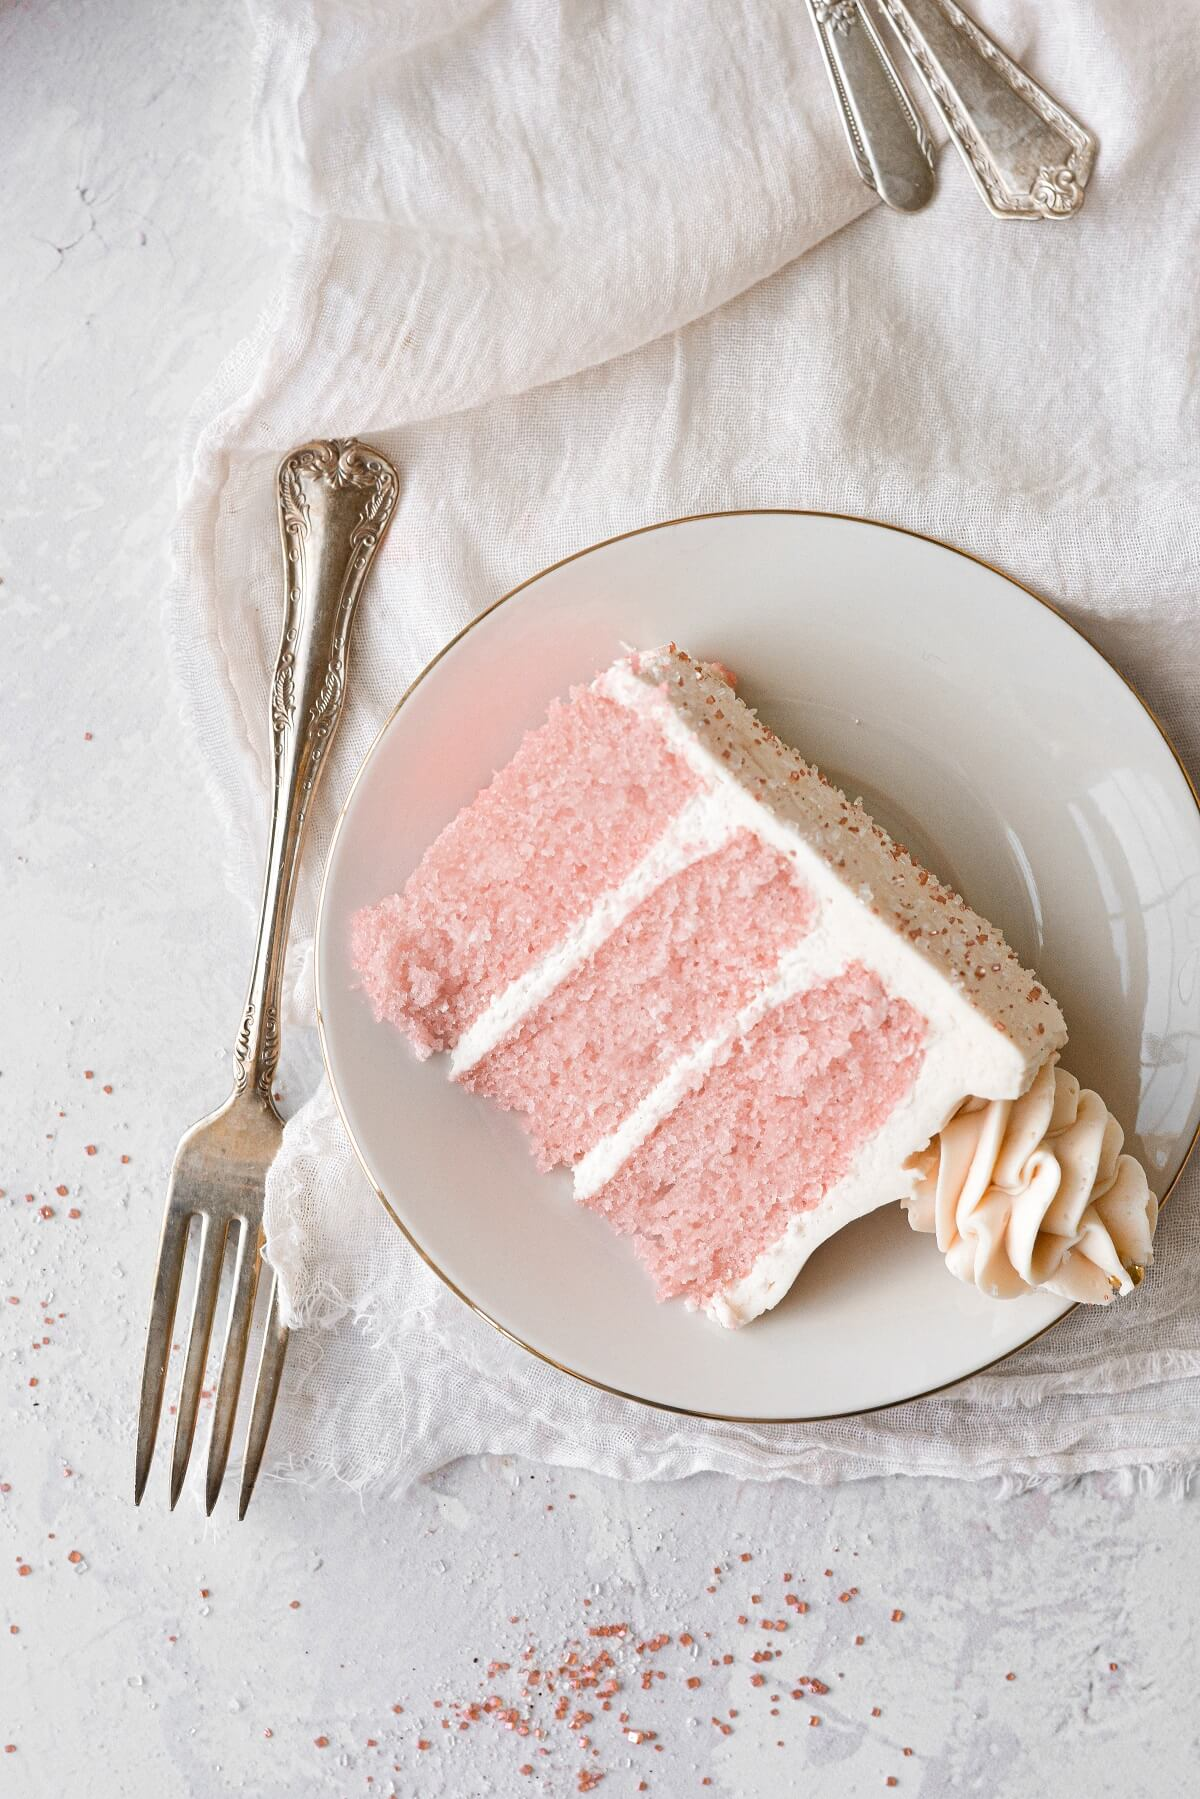 A slice of pink champagne cake with sparkling sugar.